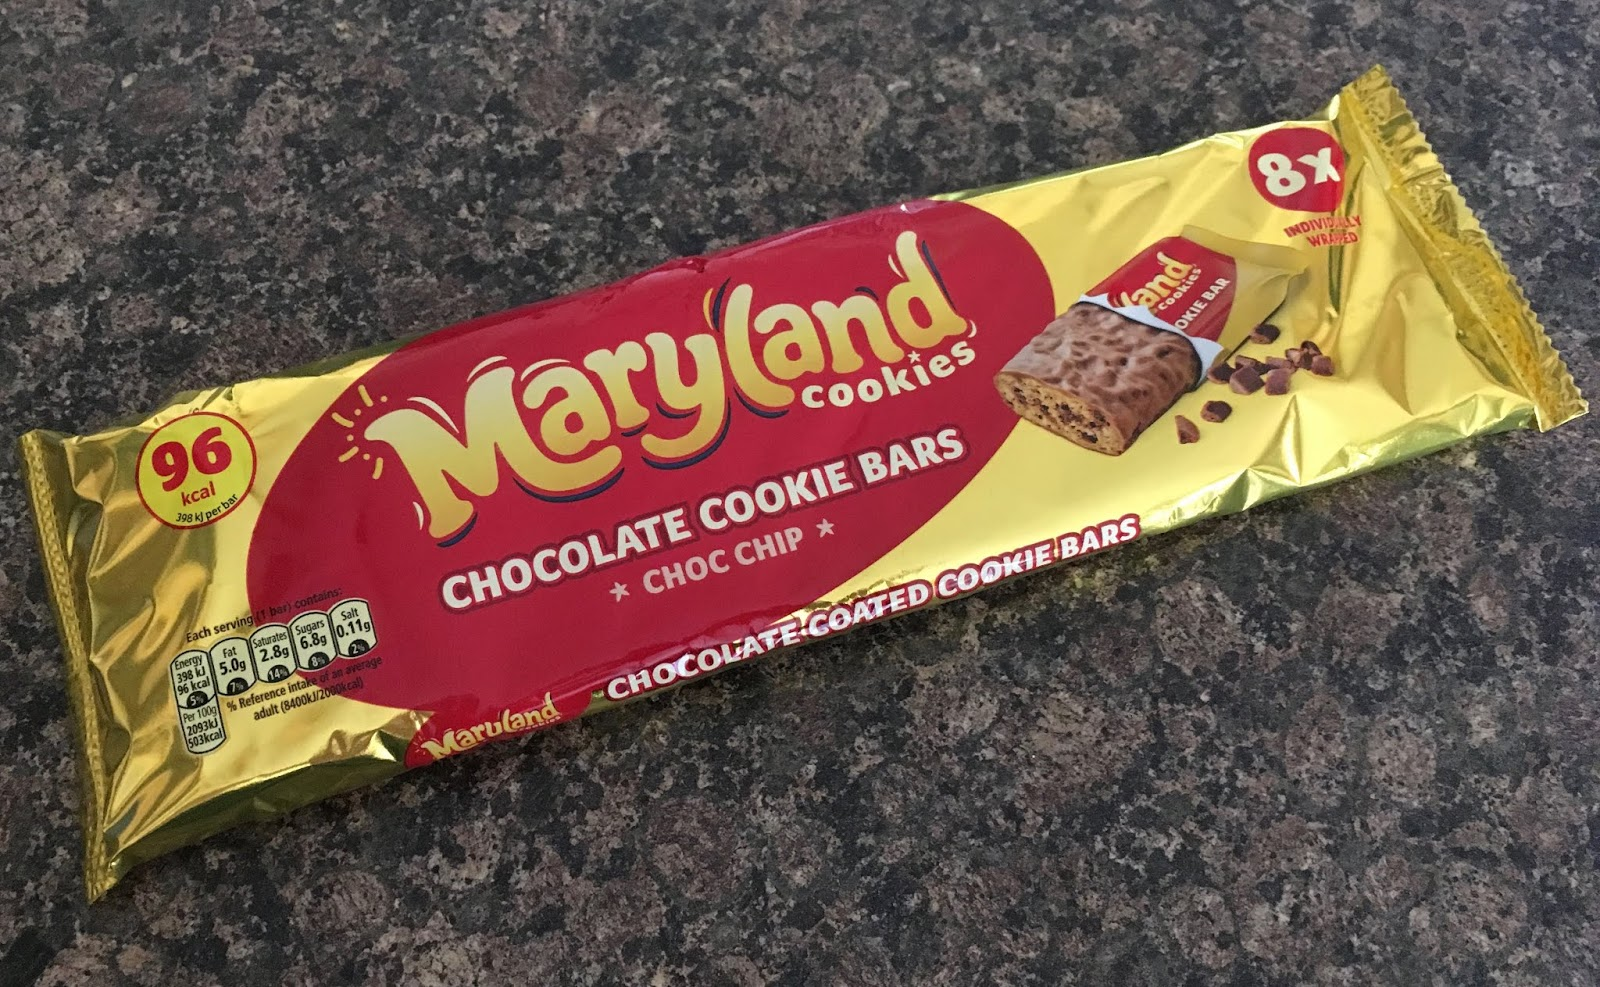 Foodstuff Finds Maryland Cookies Chocolate Cookie Bars